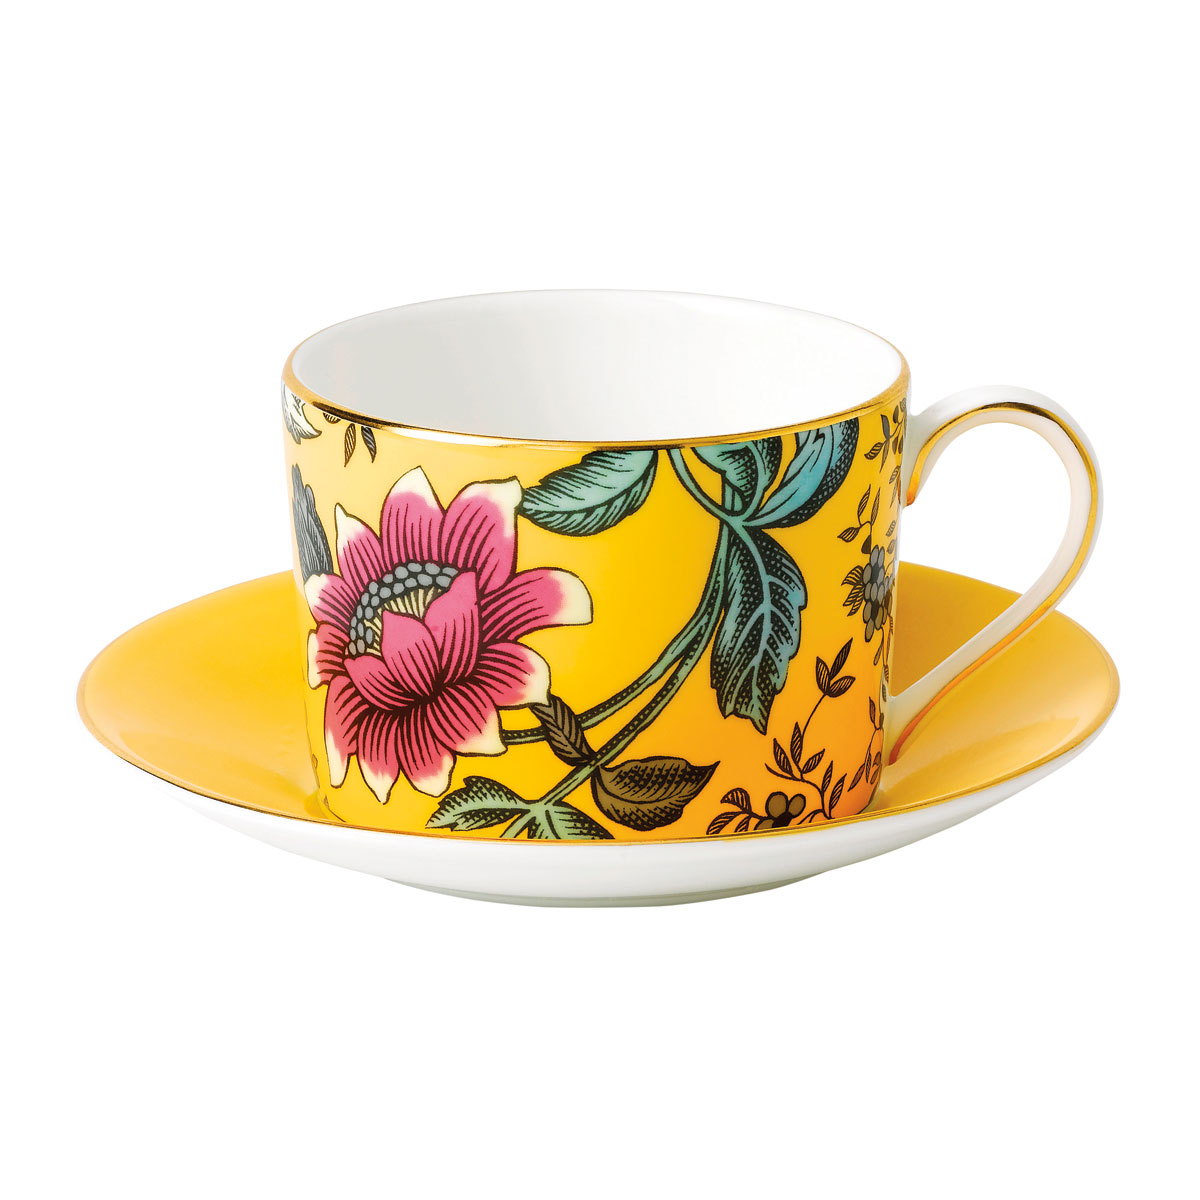 Wedgwood Wonderlust Fine Bone China Teacup and Saucer Set Yellow Tonquin